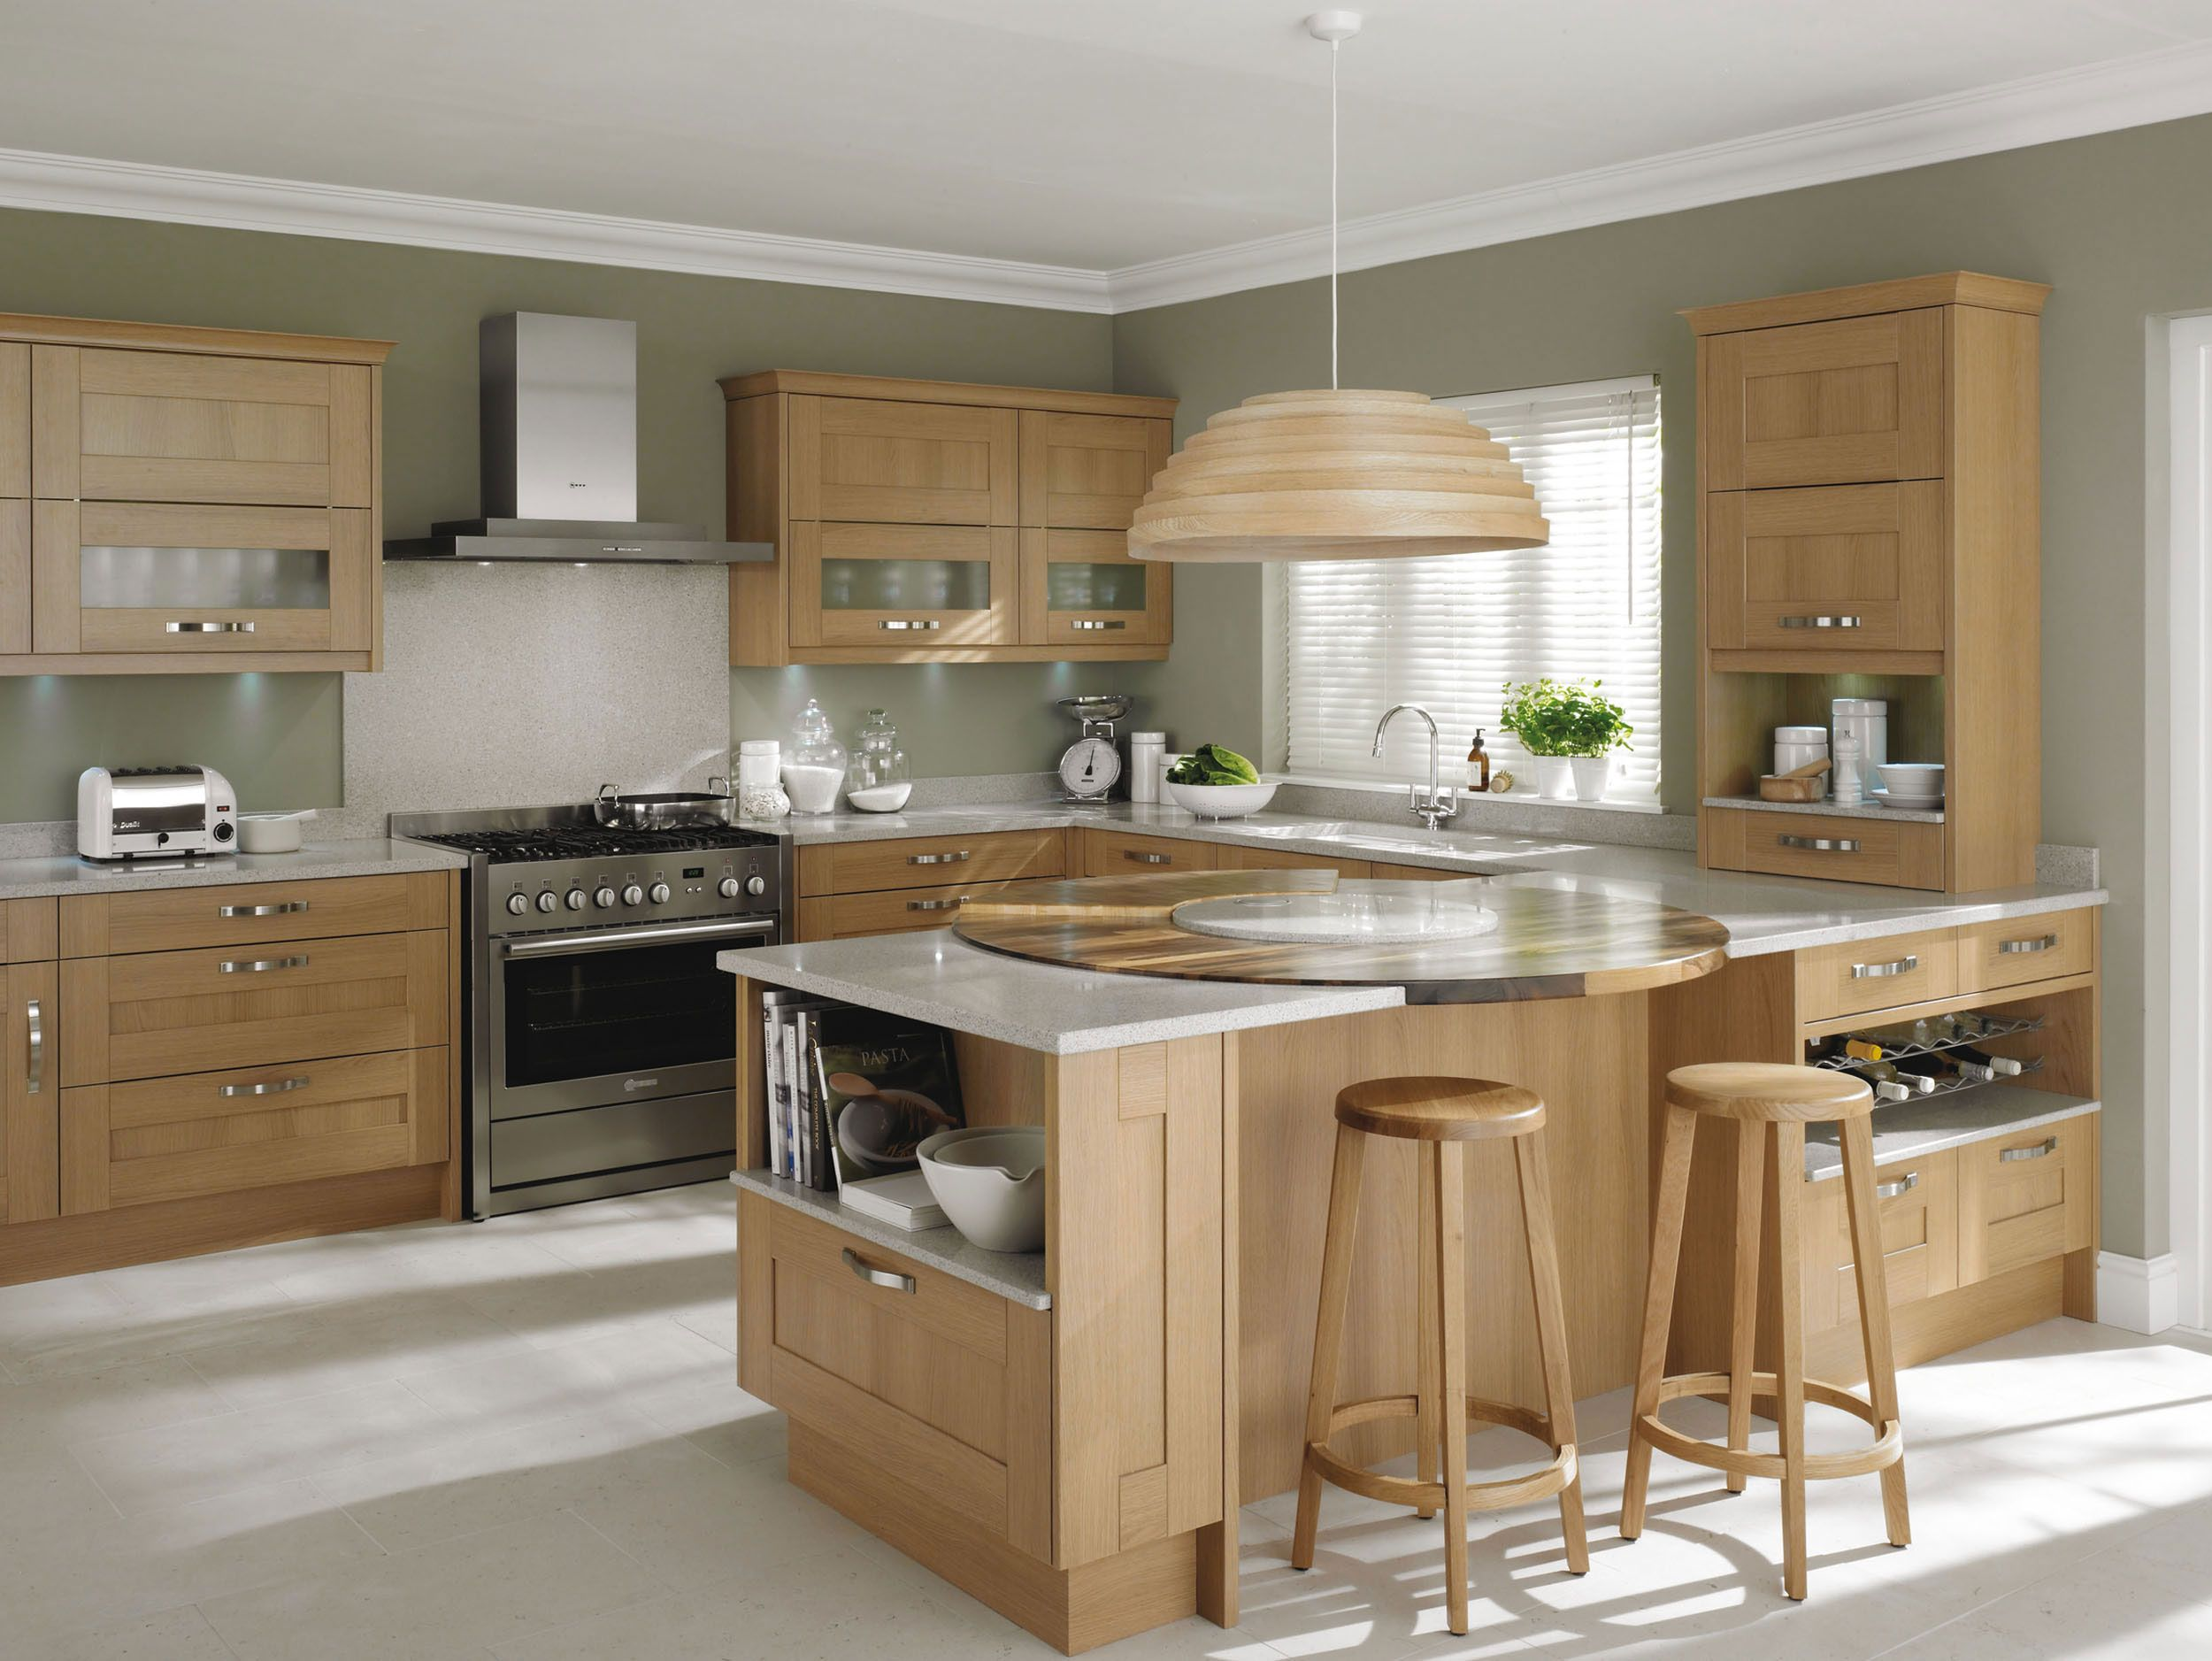 Oak kitchen ideas google search home kitchens for Kitchenette design ideas